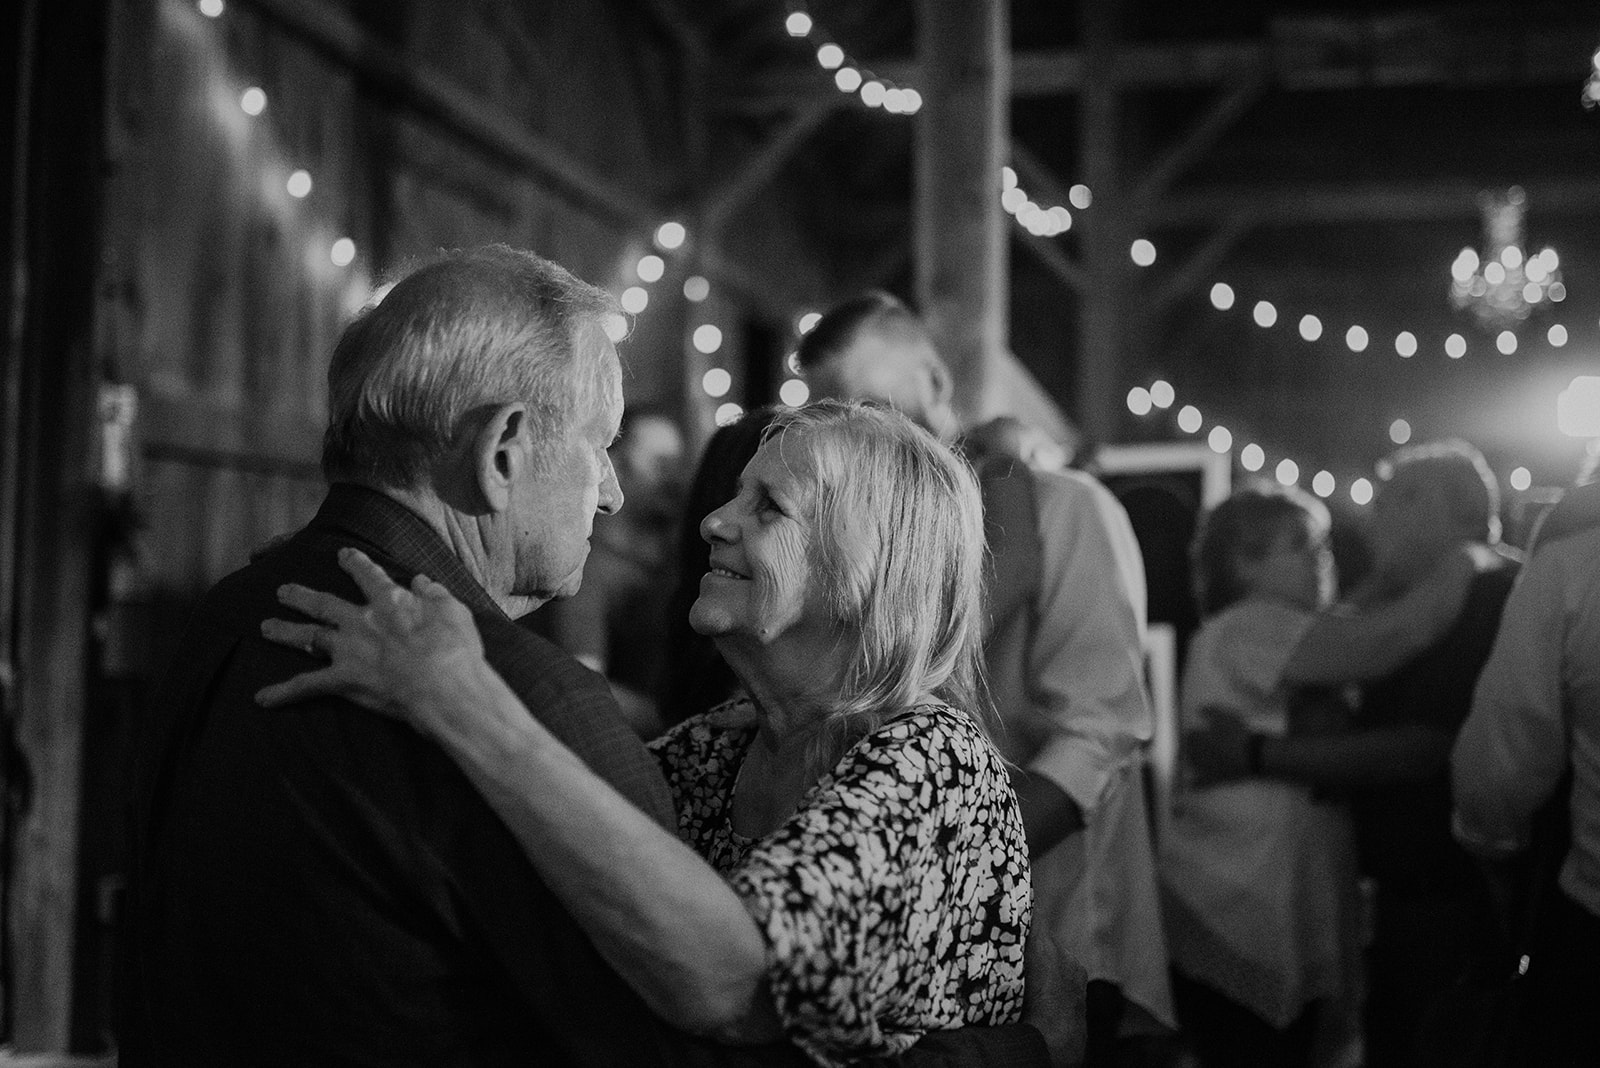 overthevineswisconsinwedding_1567.jpg